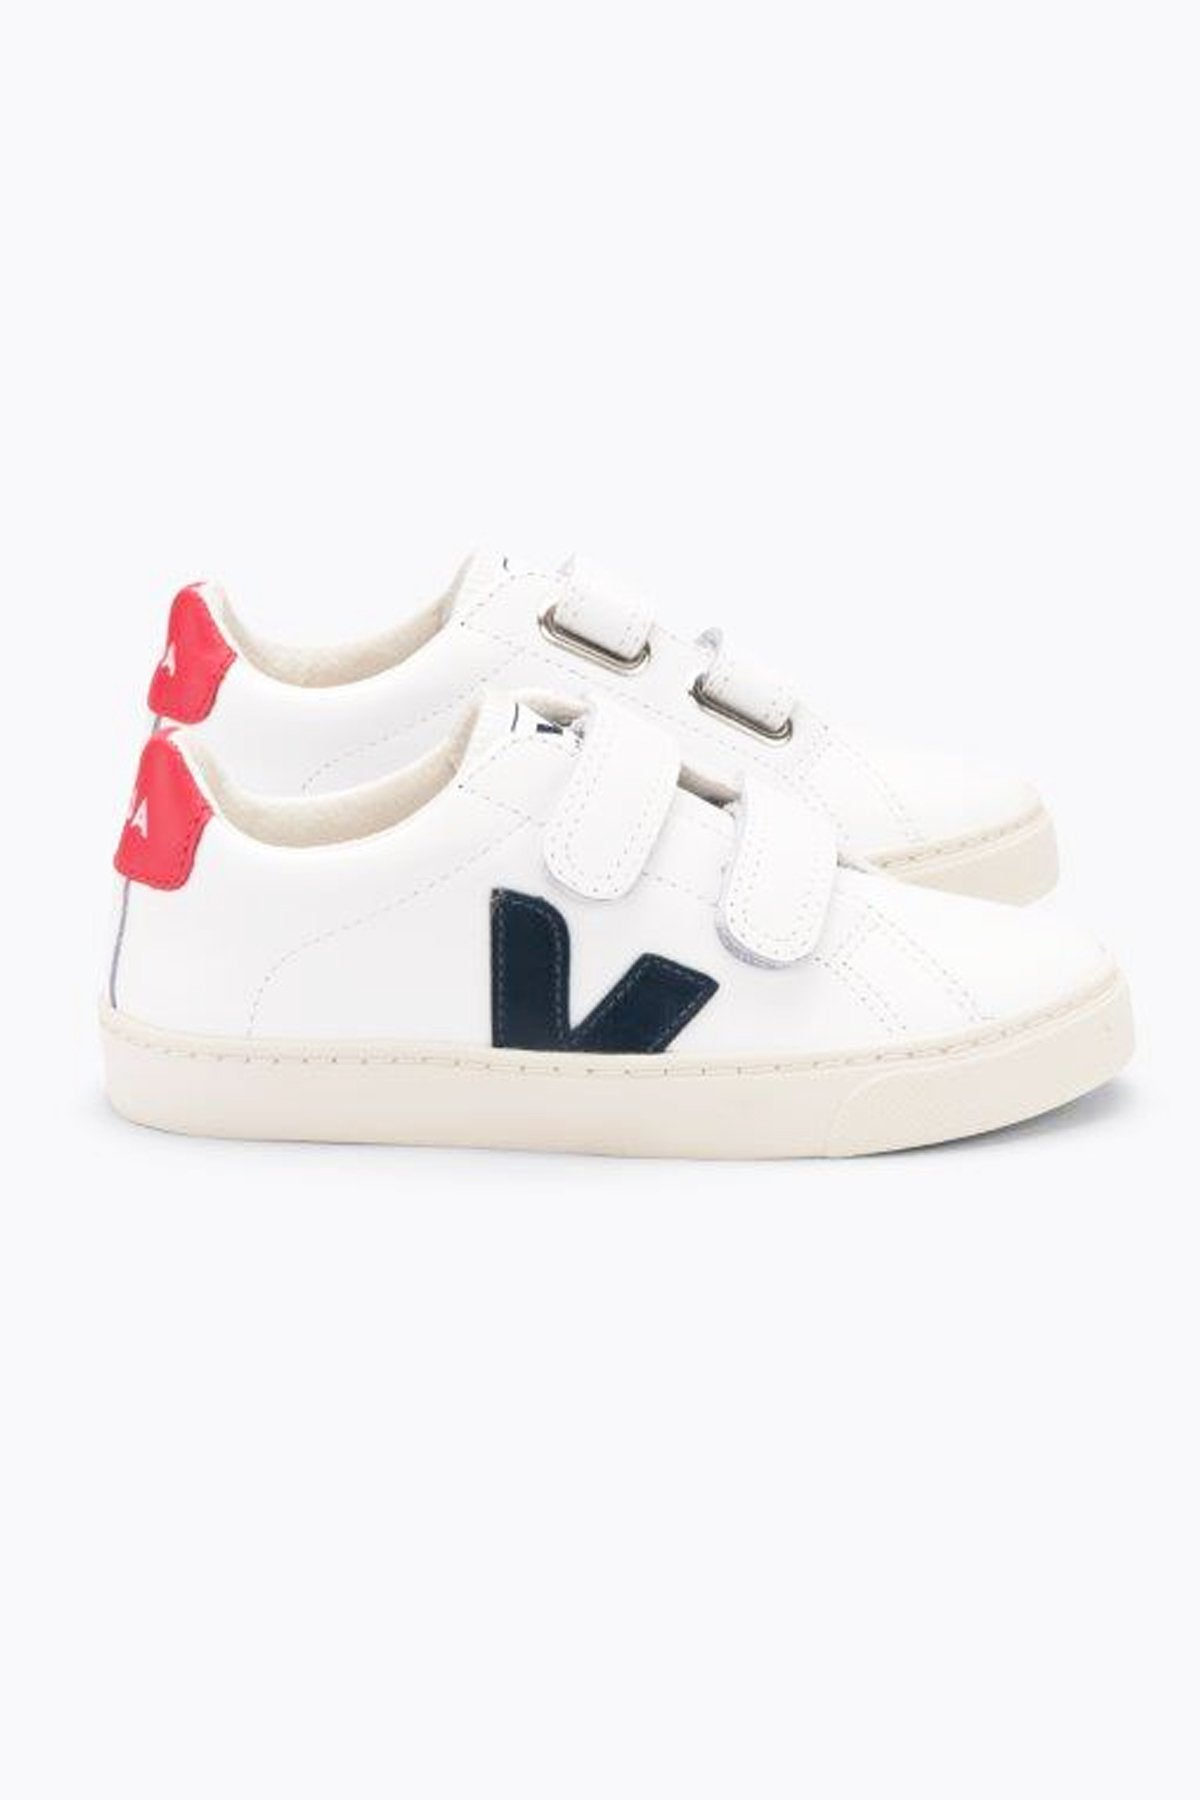 Veja Esplar Kids Shoes - White Nautico